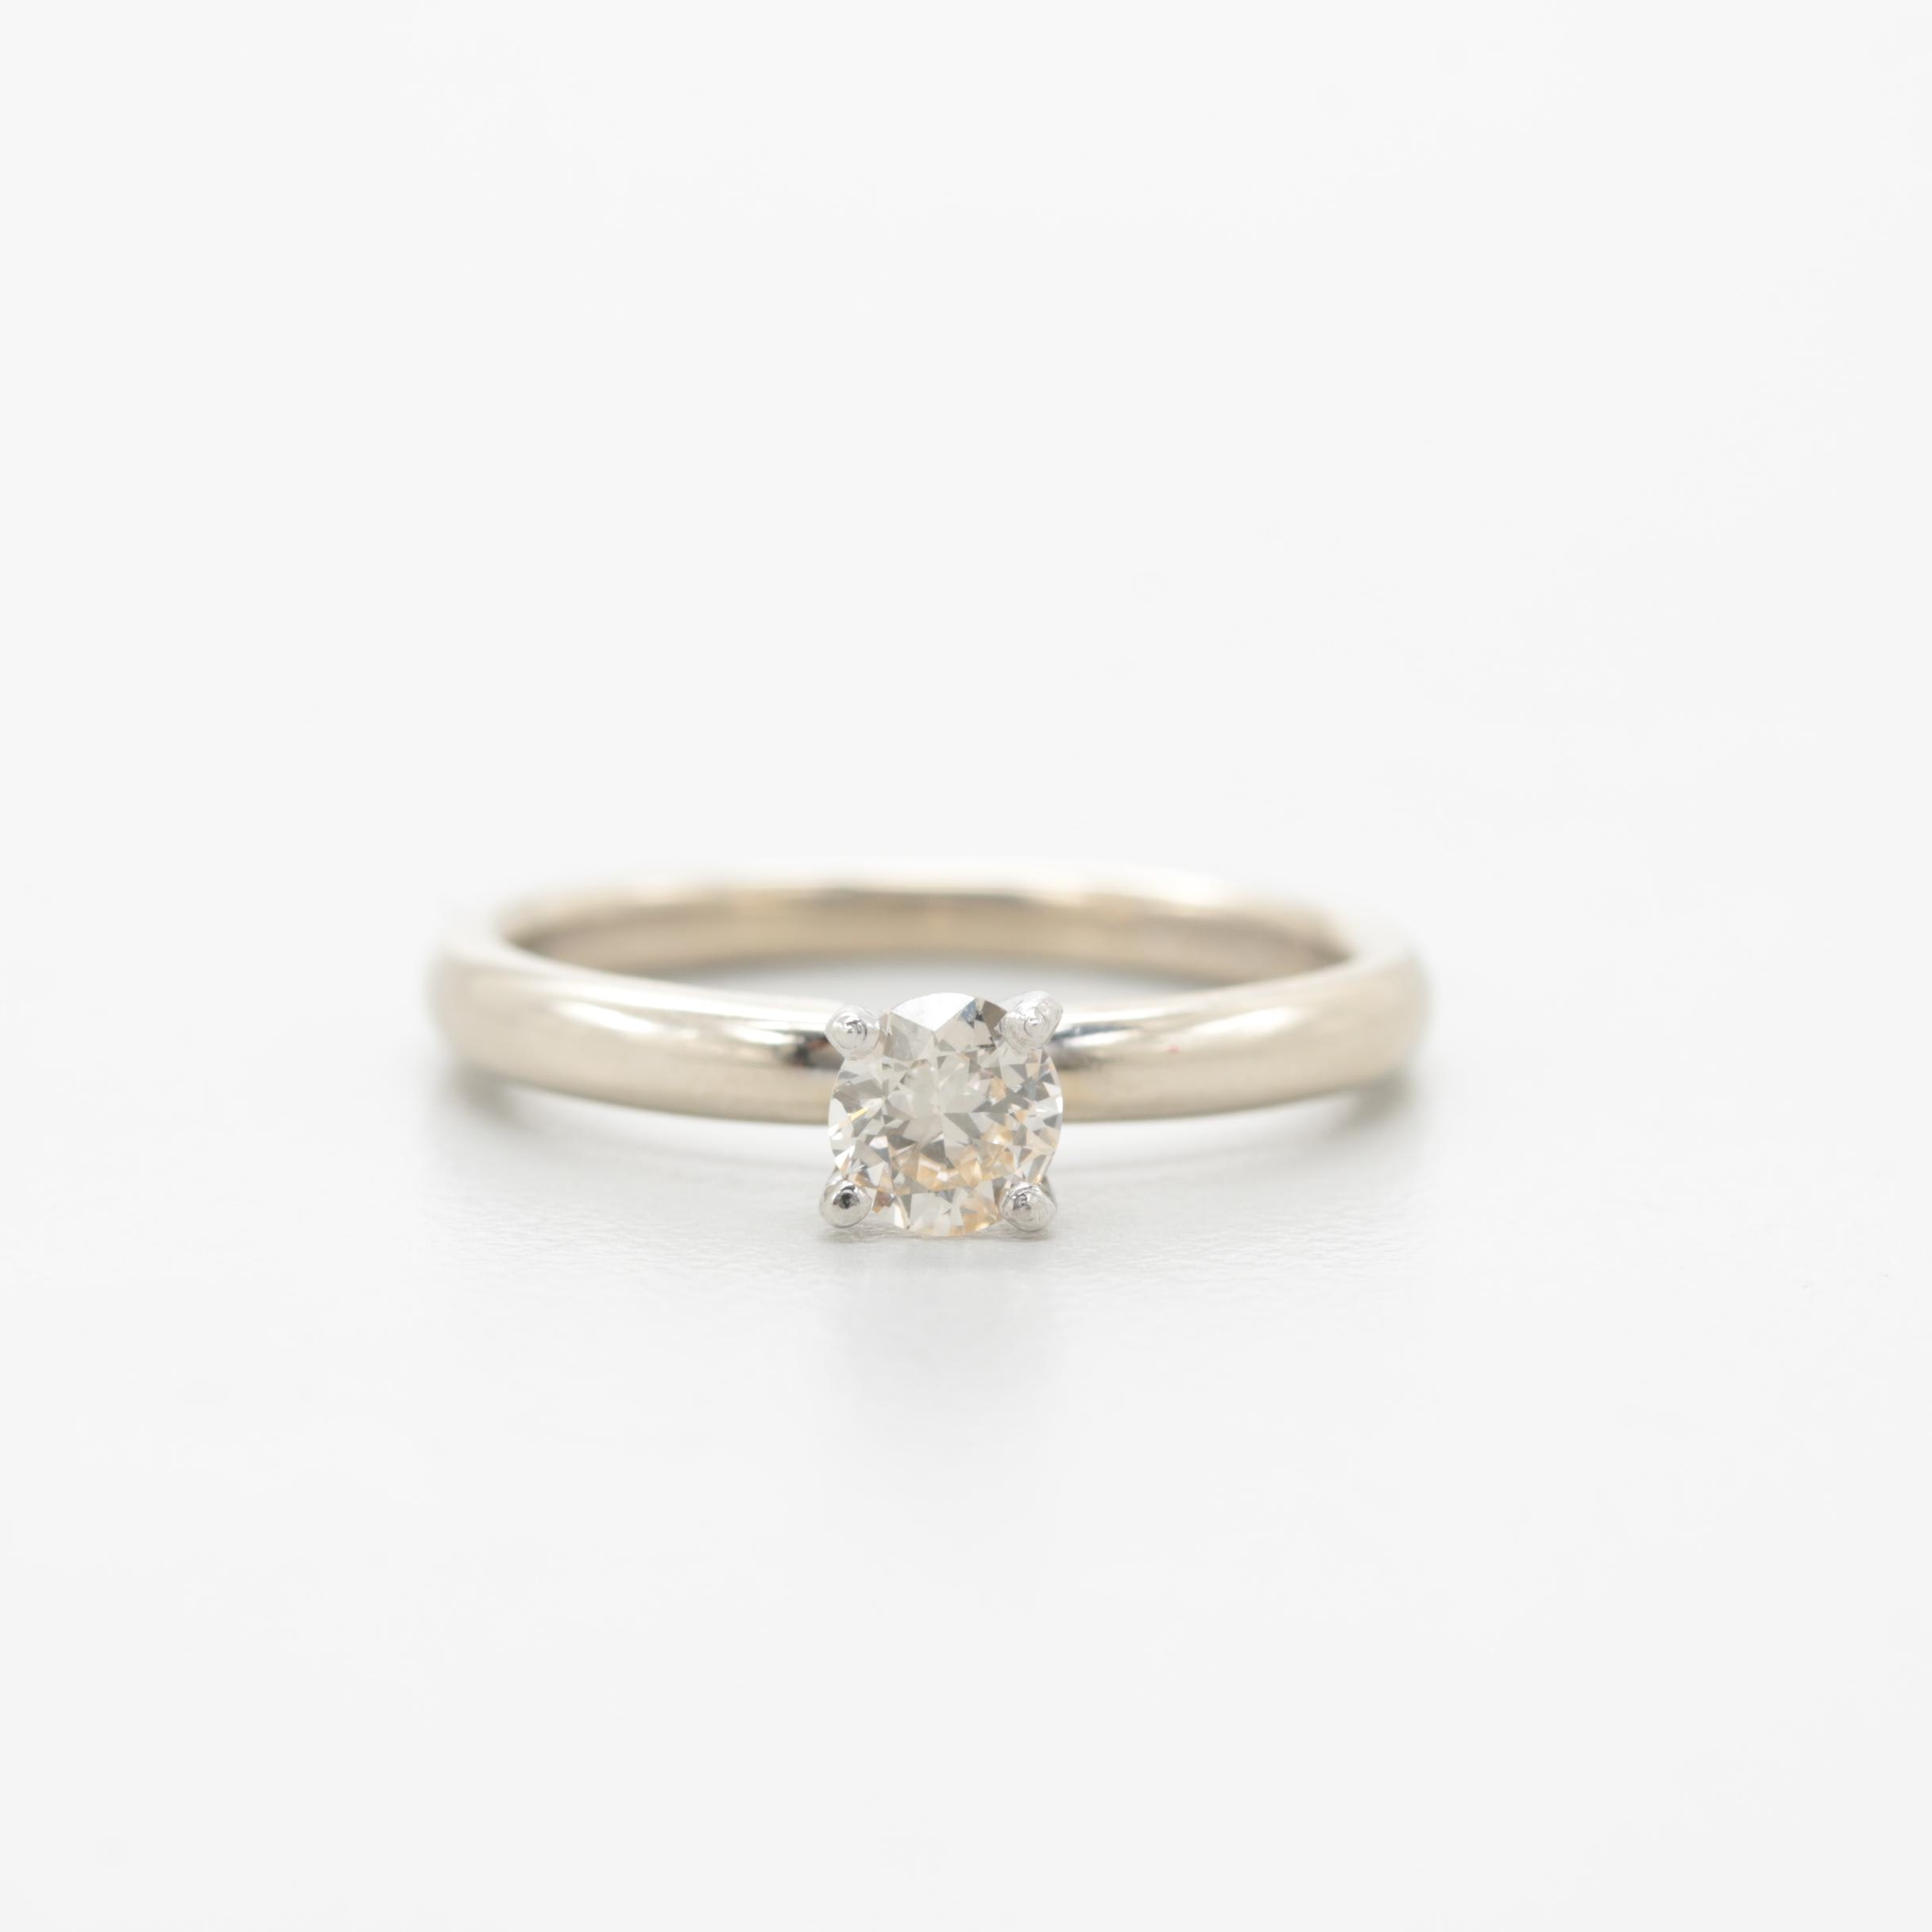 14K White Gold Diamond Ring with Platinum Accents